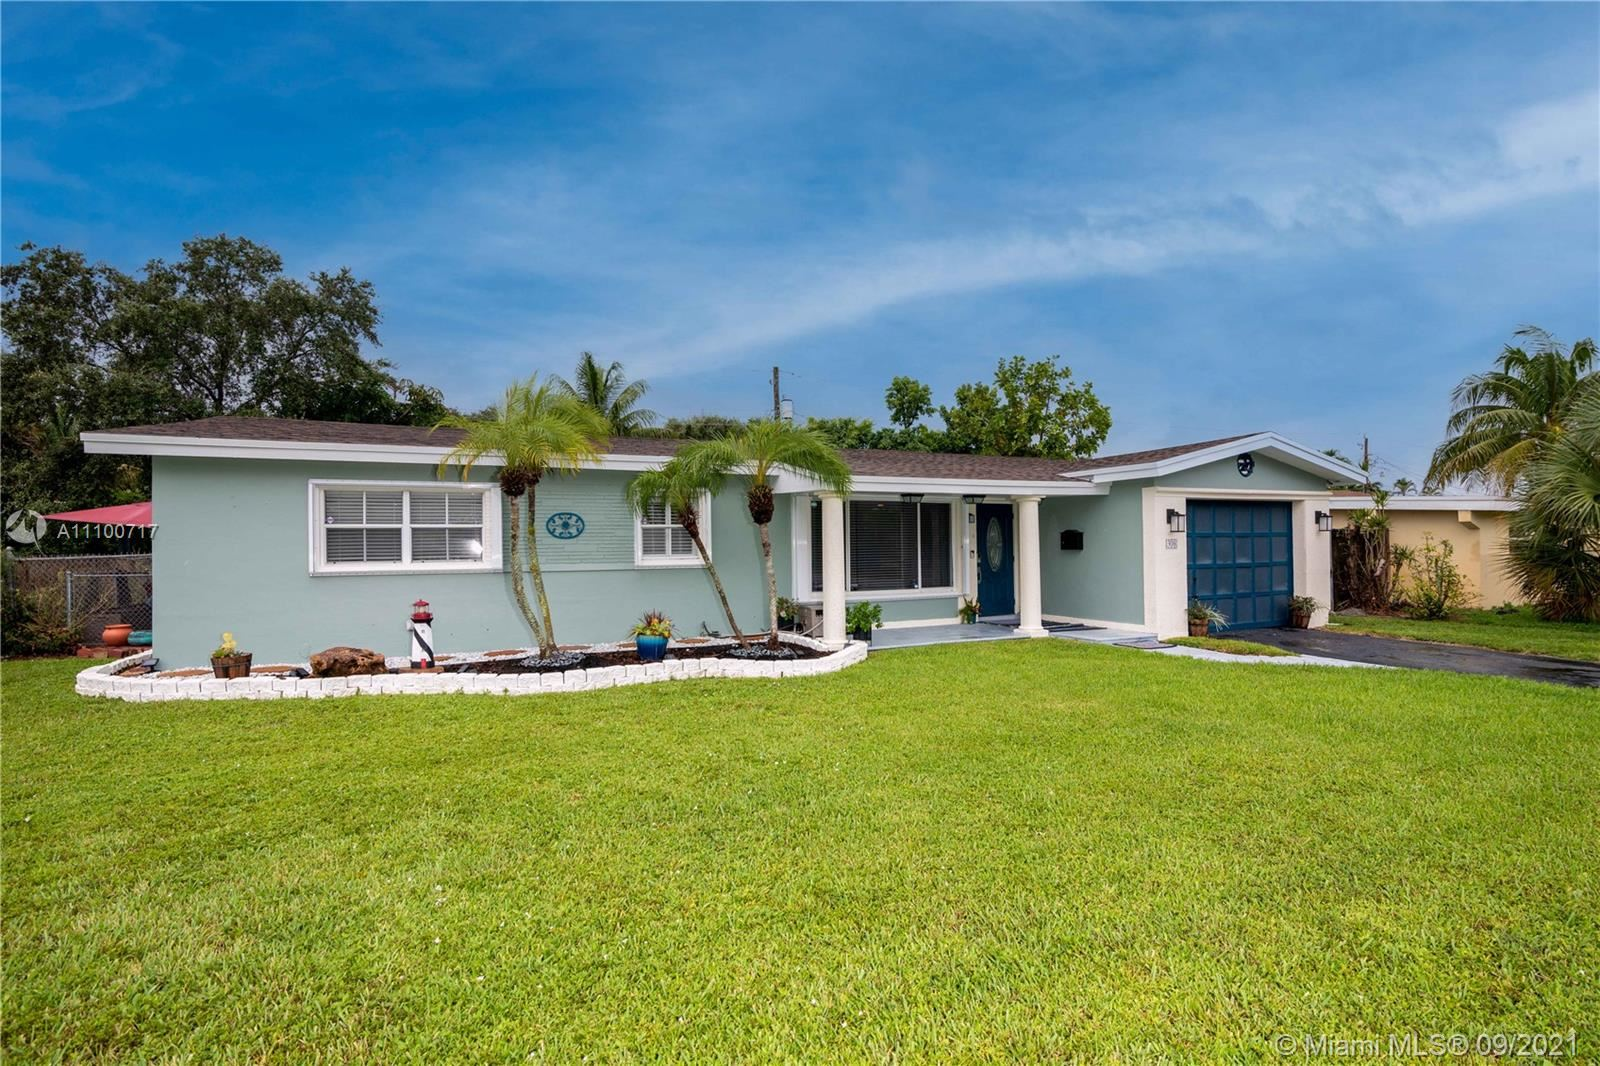 308 S 56th Ave, Hollywood, FL 33023 - #: A11100717